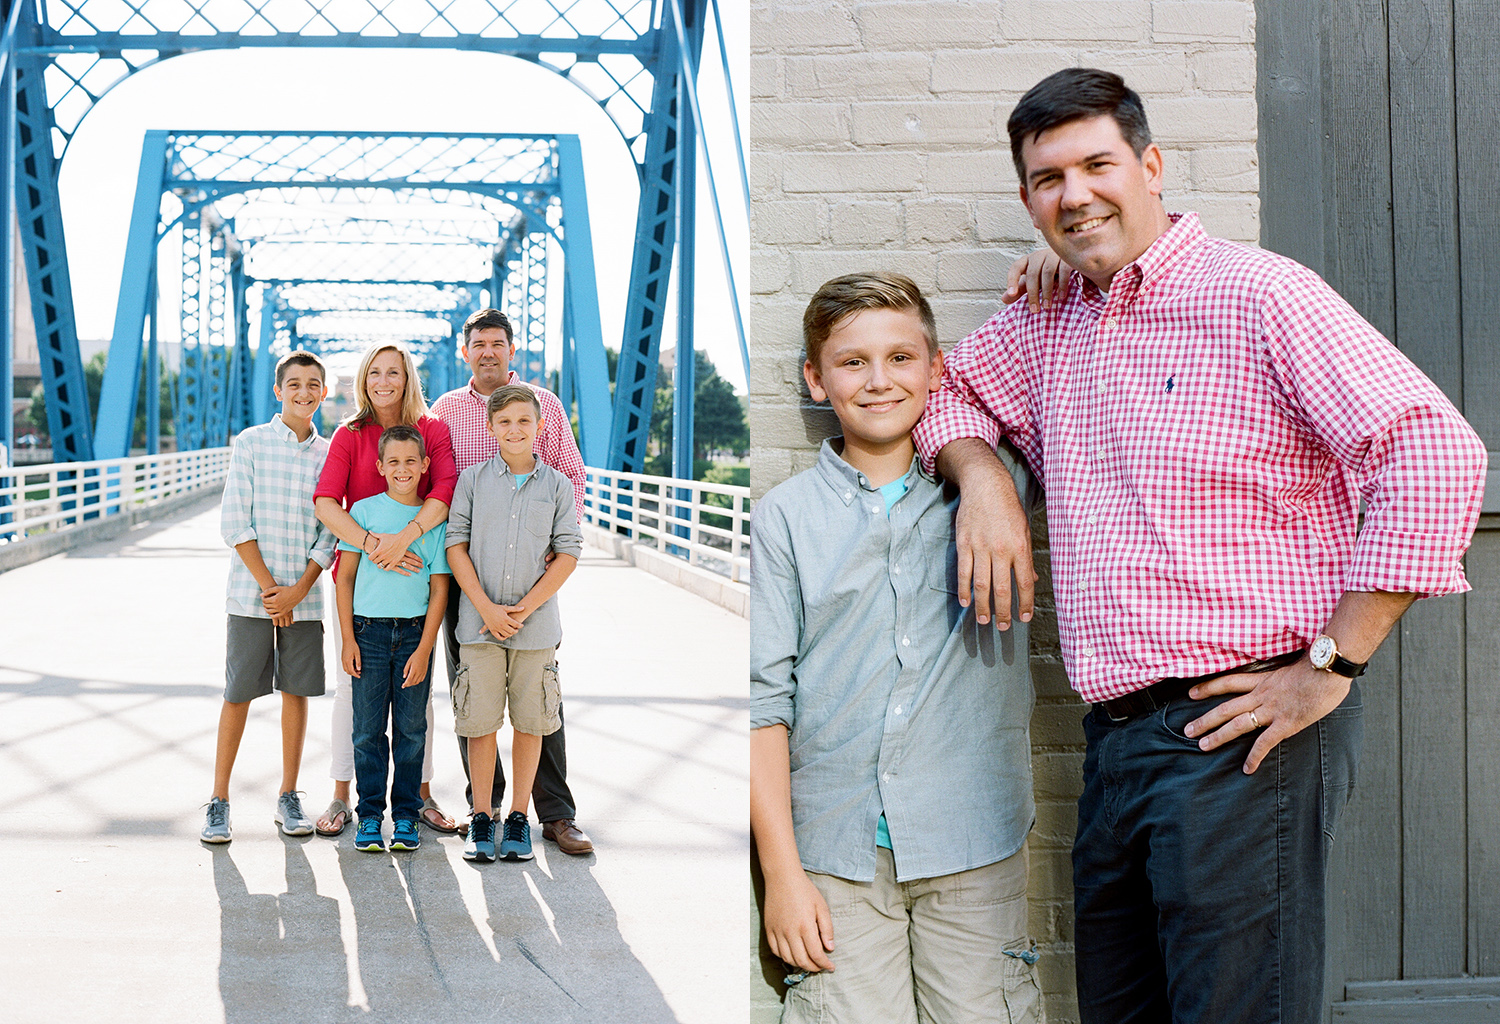 Family photos at The Blue Bridge Grand Rapids, Michigan